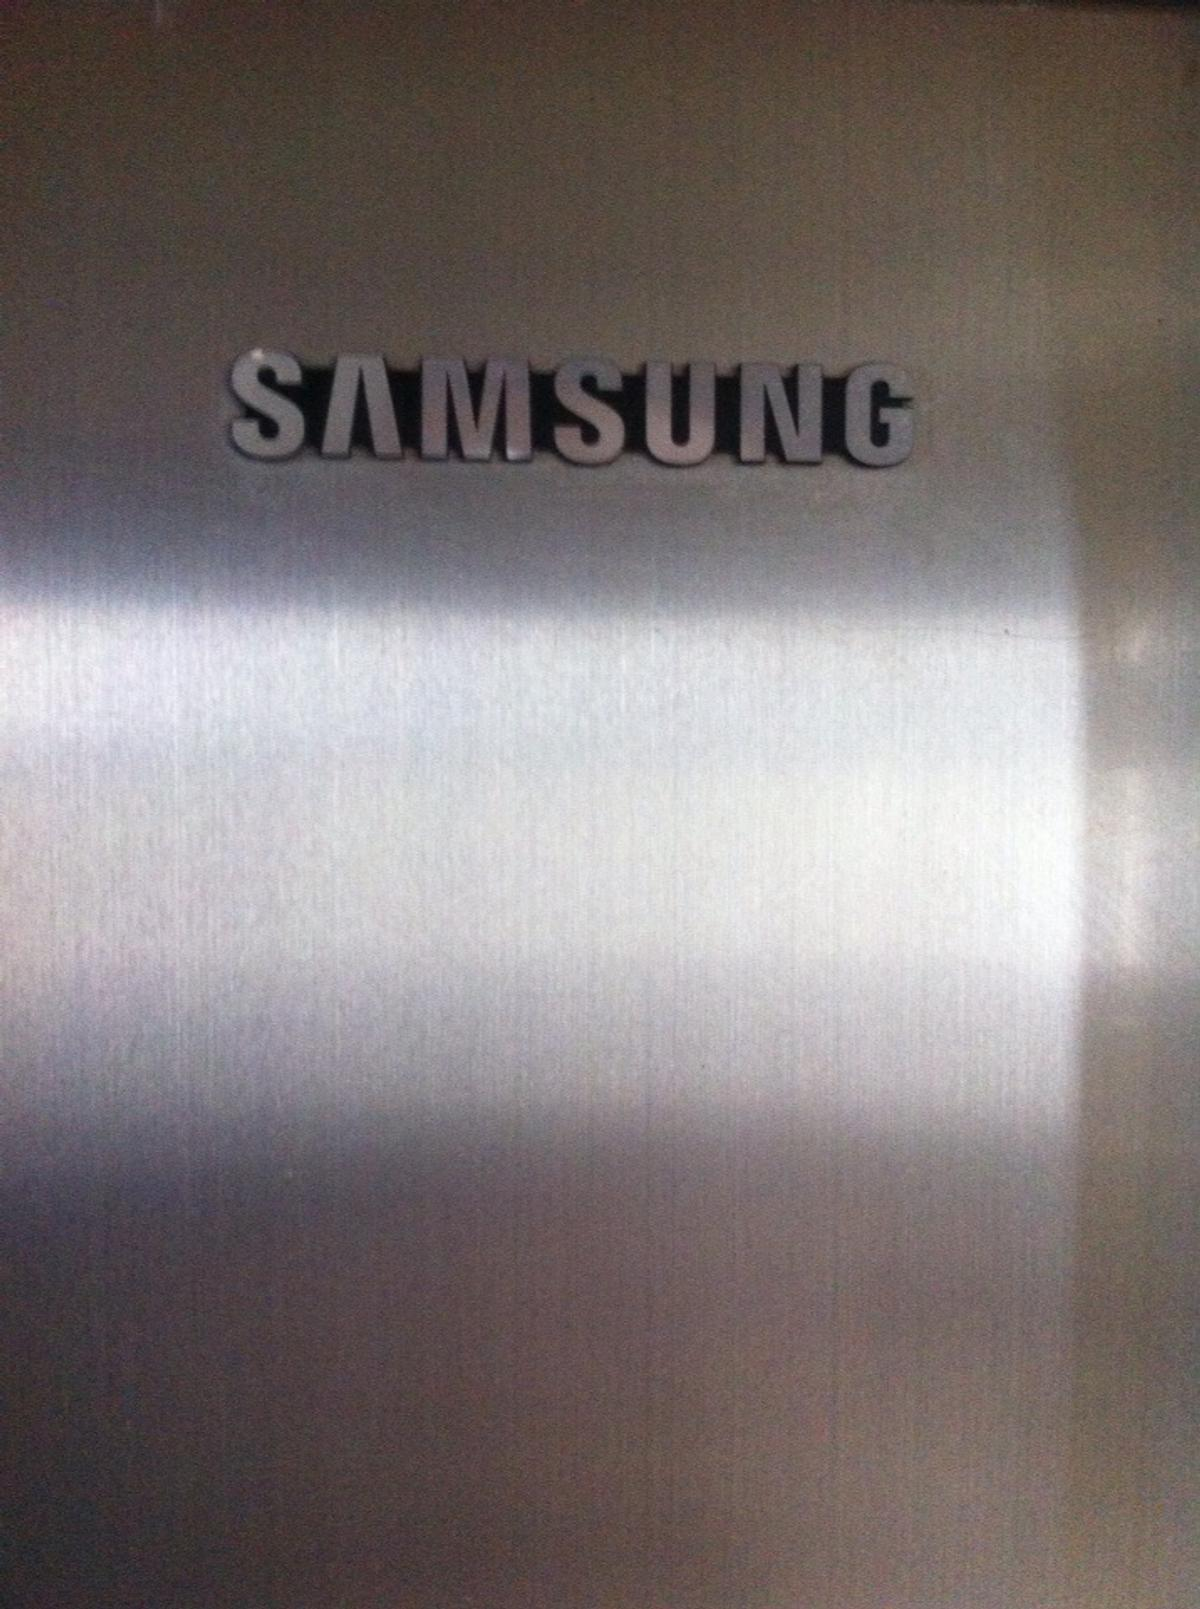 Samsung fridge freezer - please read on in South Ribble for